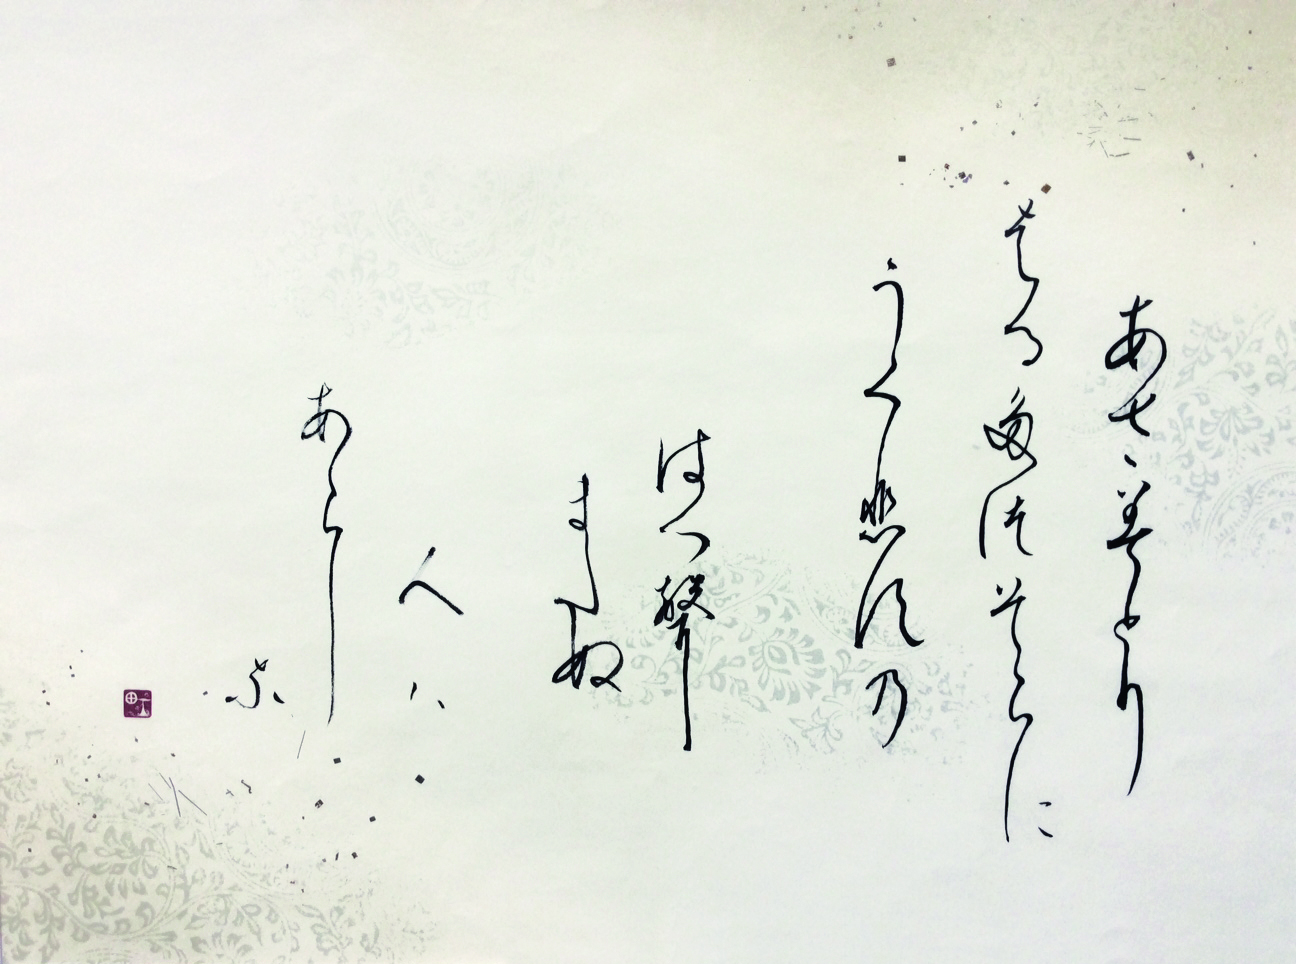 Machiko Hafner-Nakai, The start of Spring, 2016, ink on Japan paper decorated for calligraphy, 52.5 x 66.5 cm